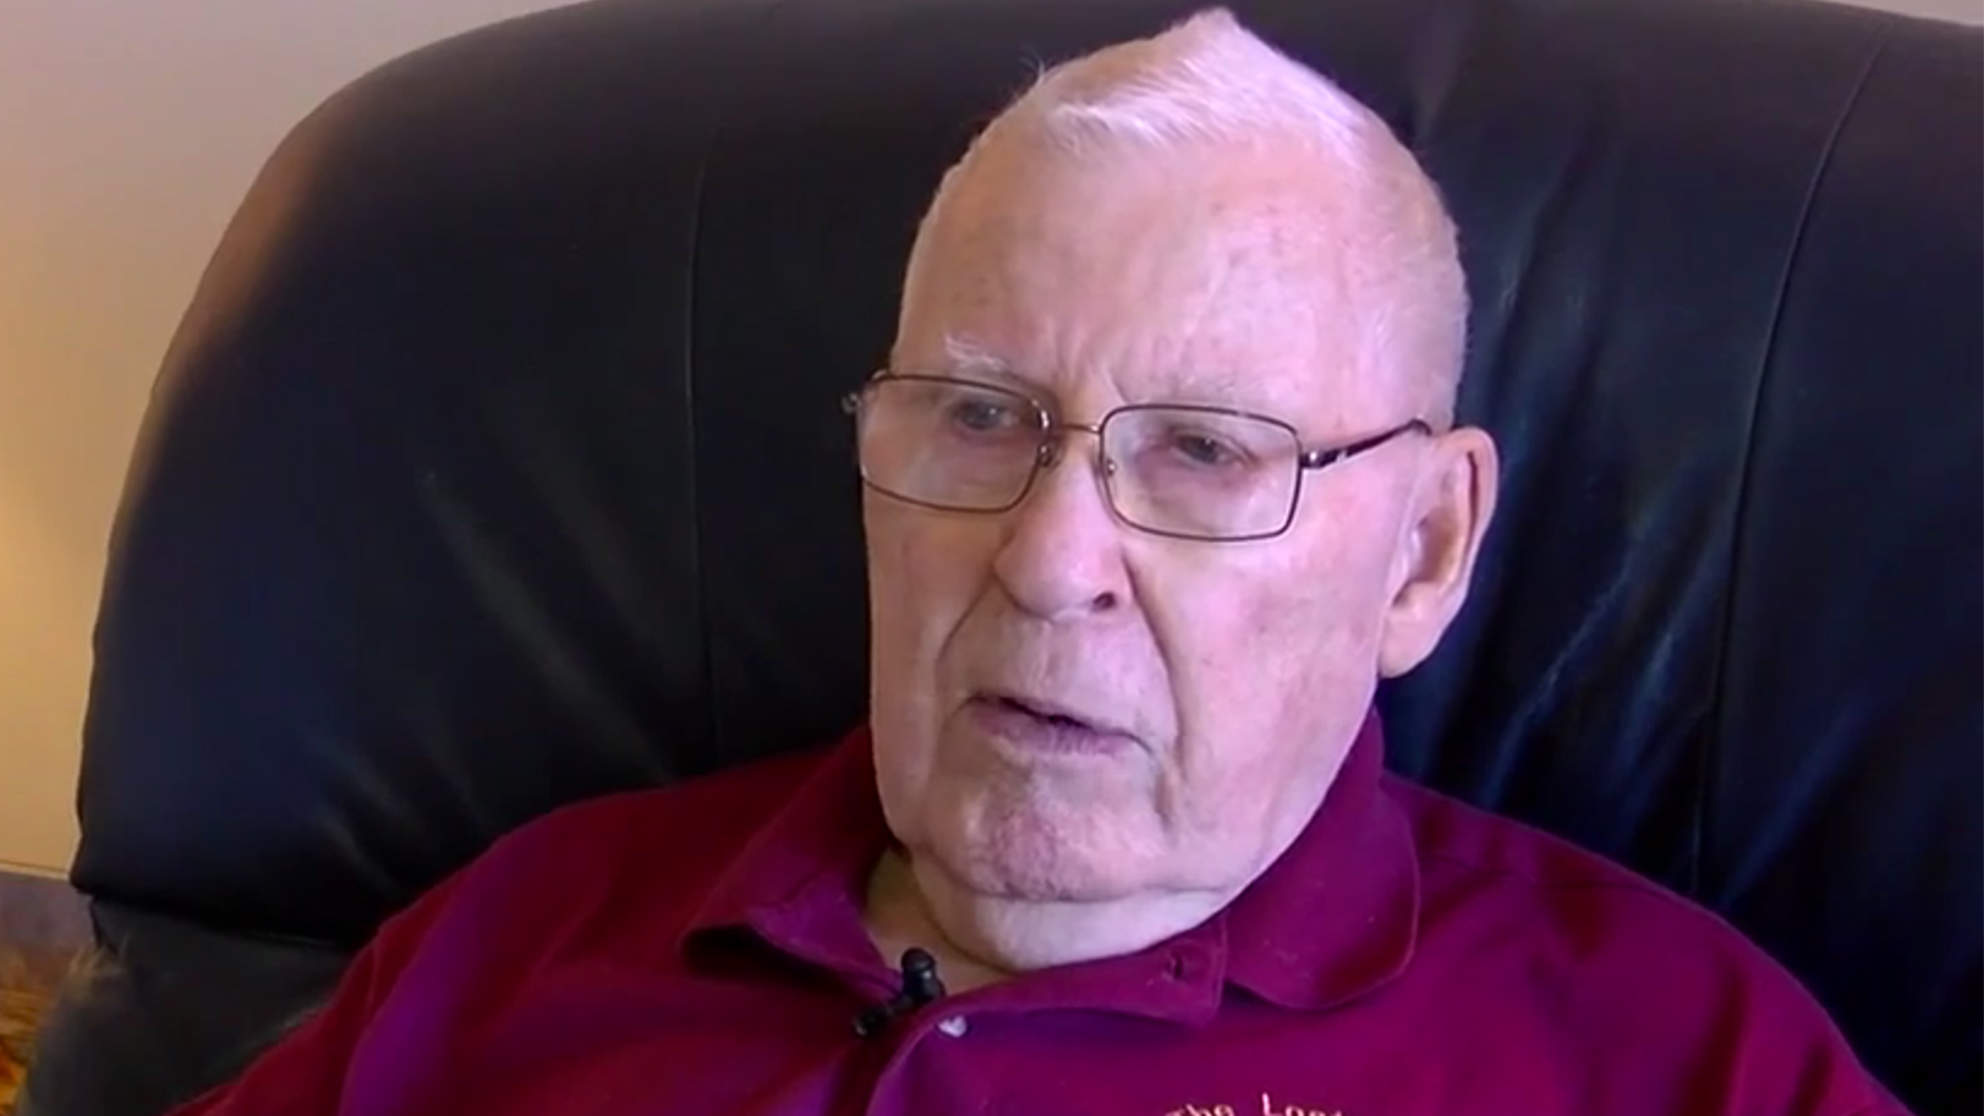 This 87-Year-Old Man Is Searching for a Job to Pay for Wife's Medical Bills